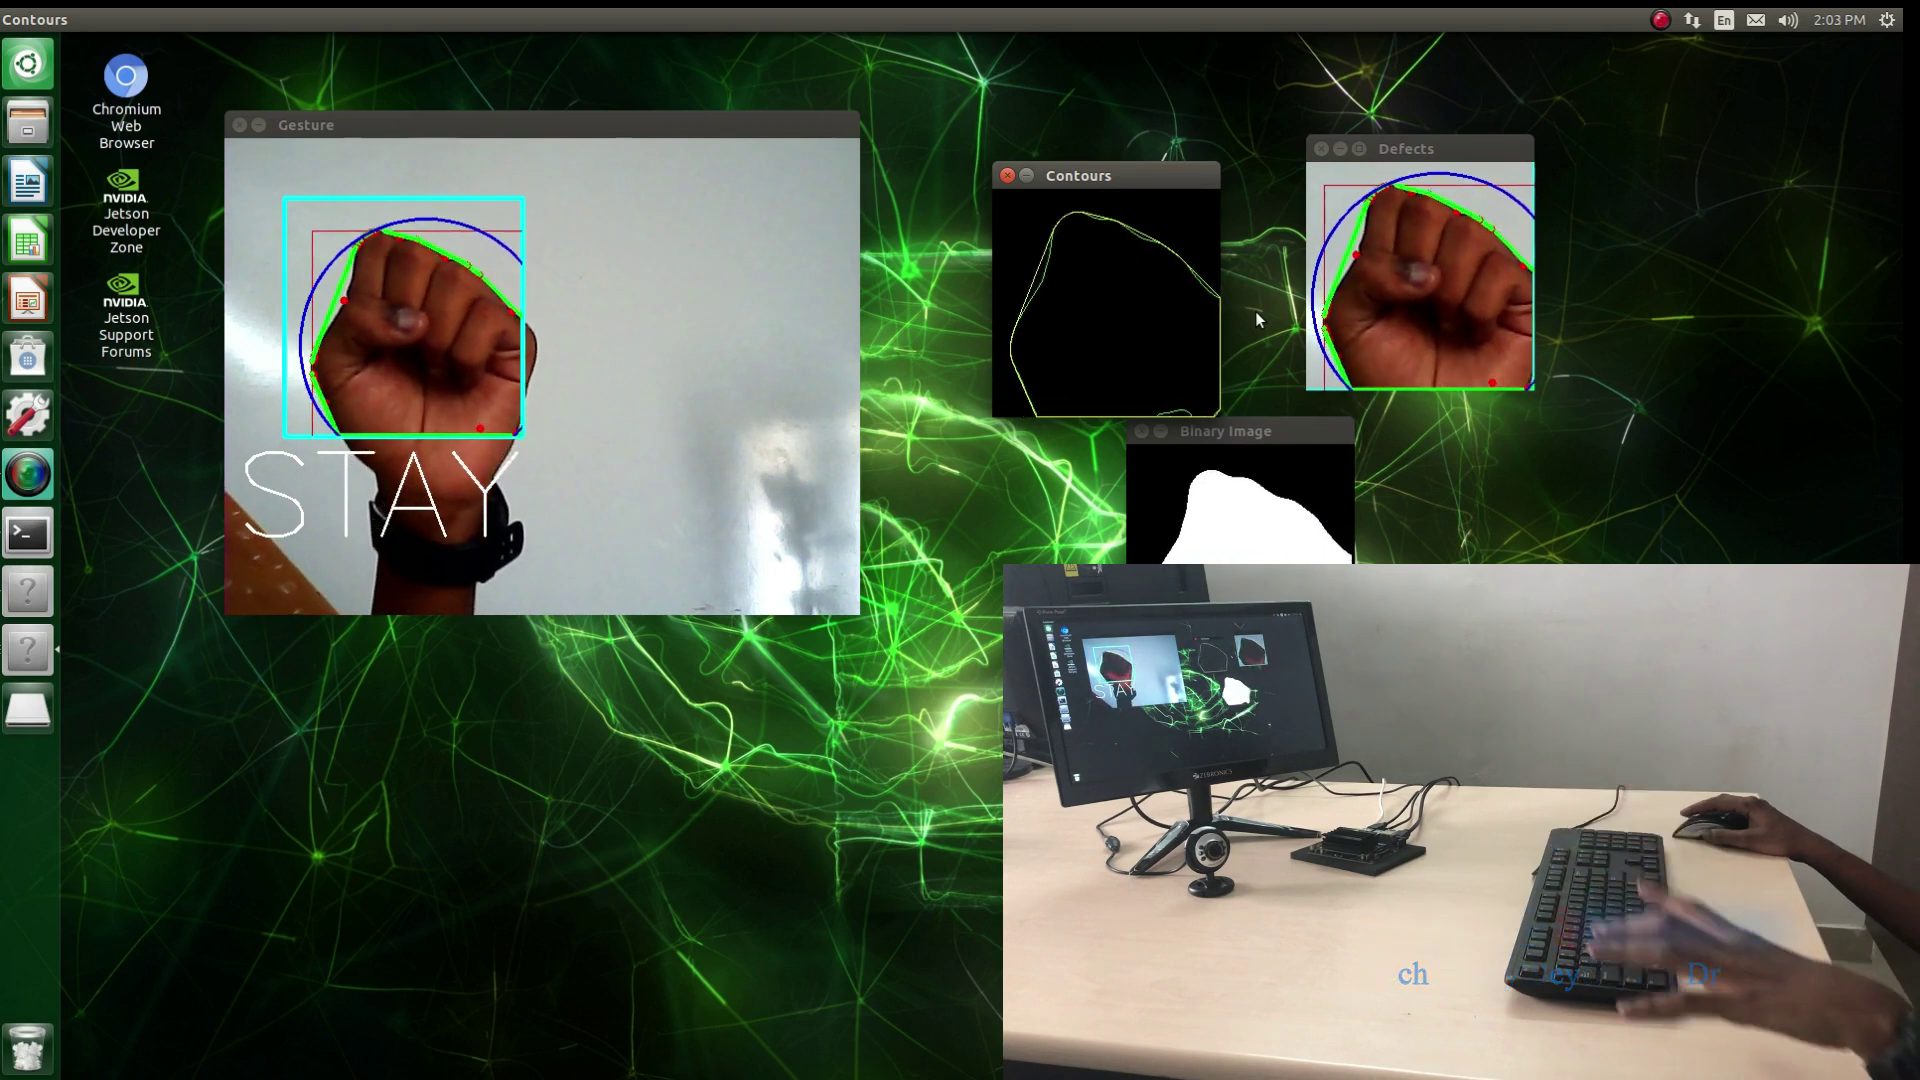 Gesture recognition using Jetson Nano